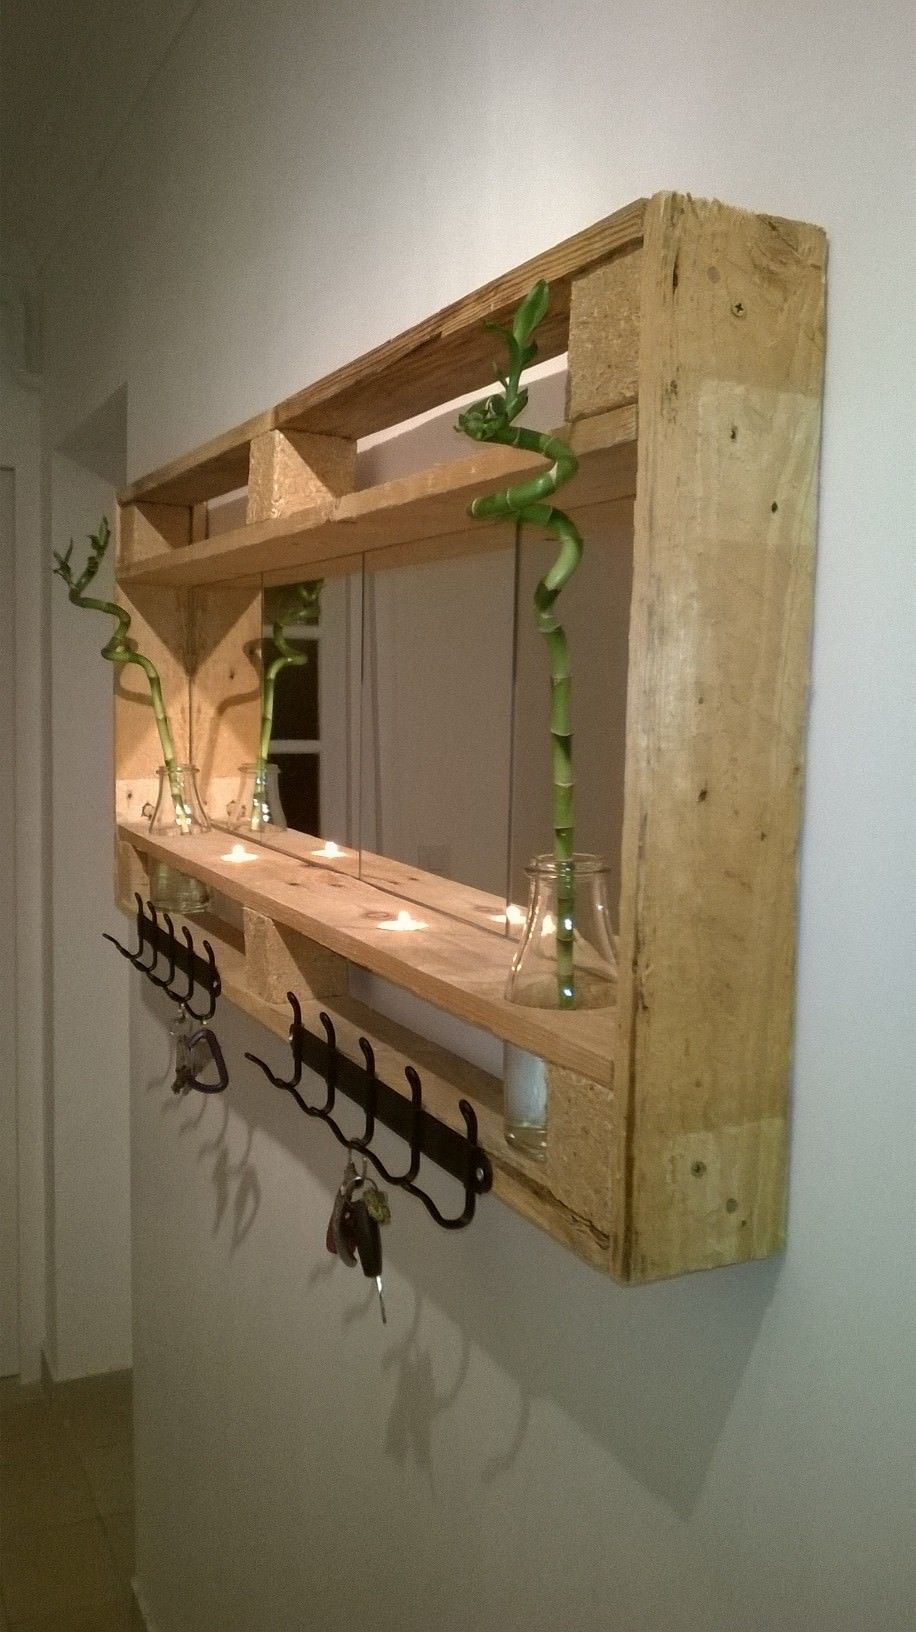 Flurgarderobe Aus Paletten Pallet Mirror For My Entrance Flur Muebles De Madera Reciclada